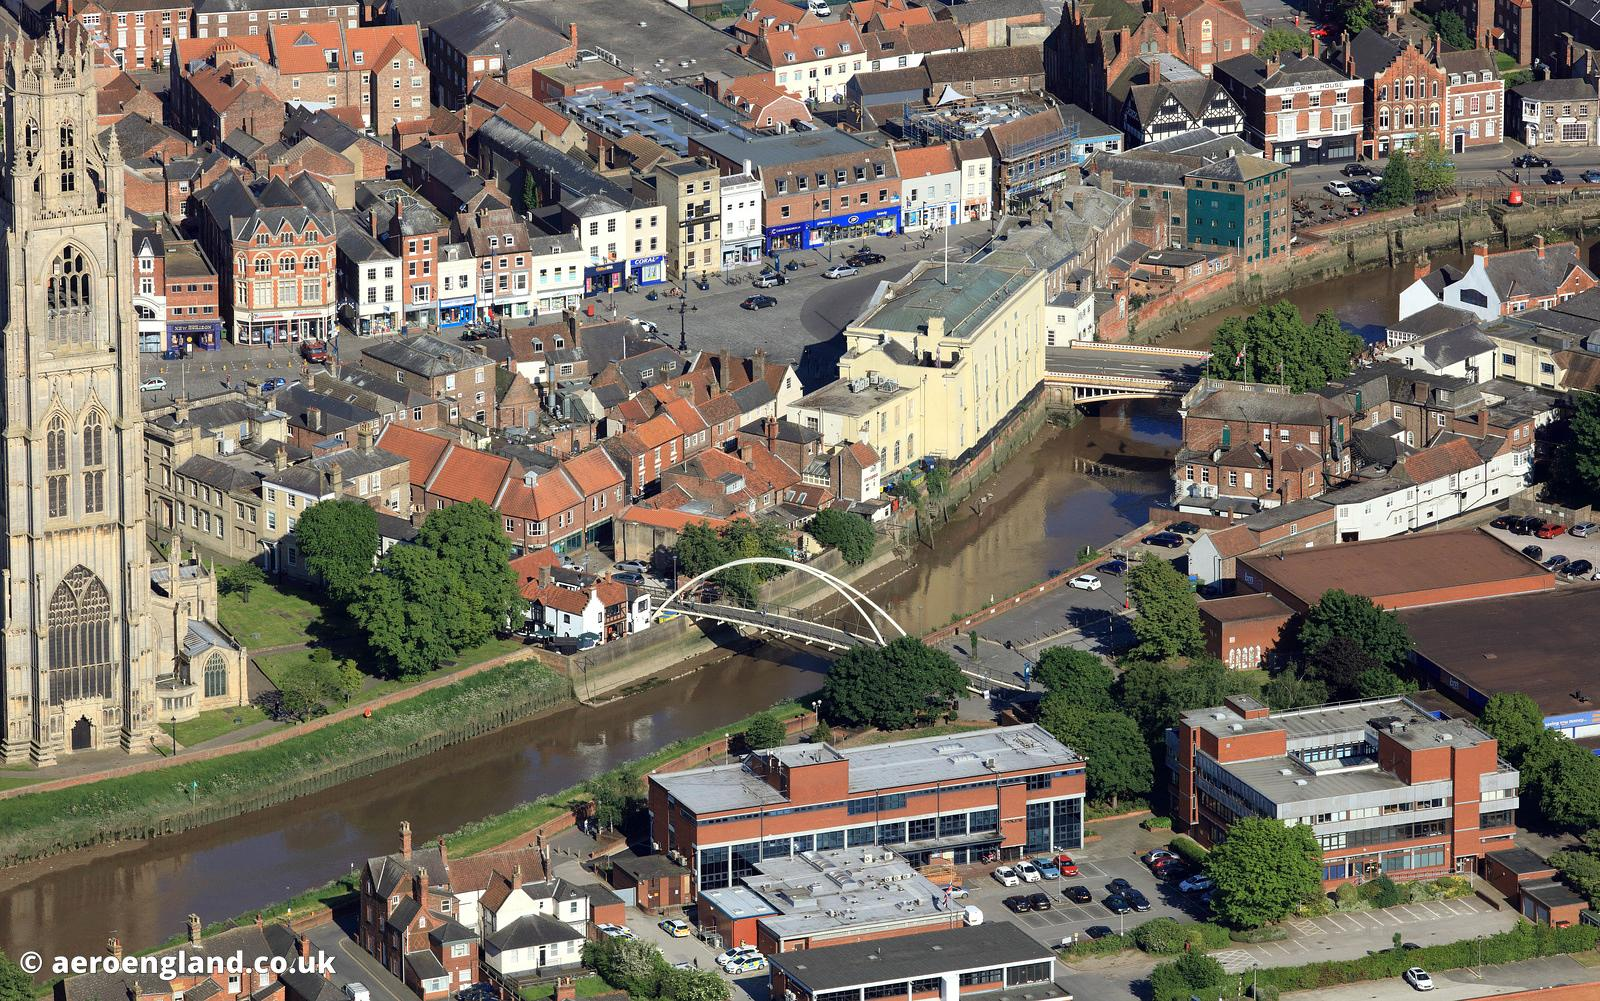 River Witham & St. Botolph's Bridge  at Boston, Linconshire aerial photograph